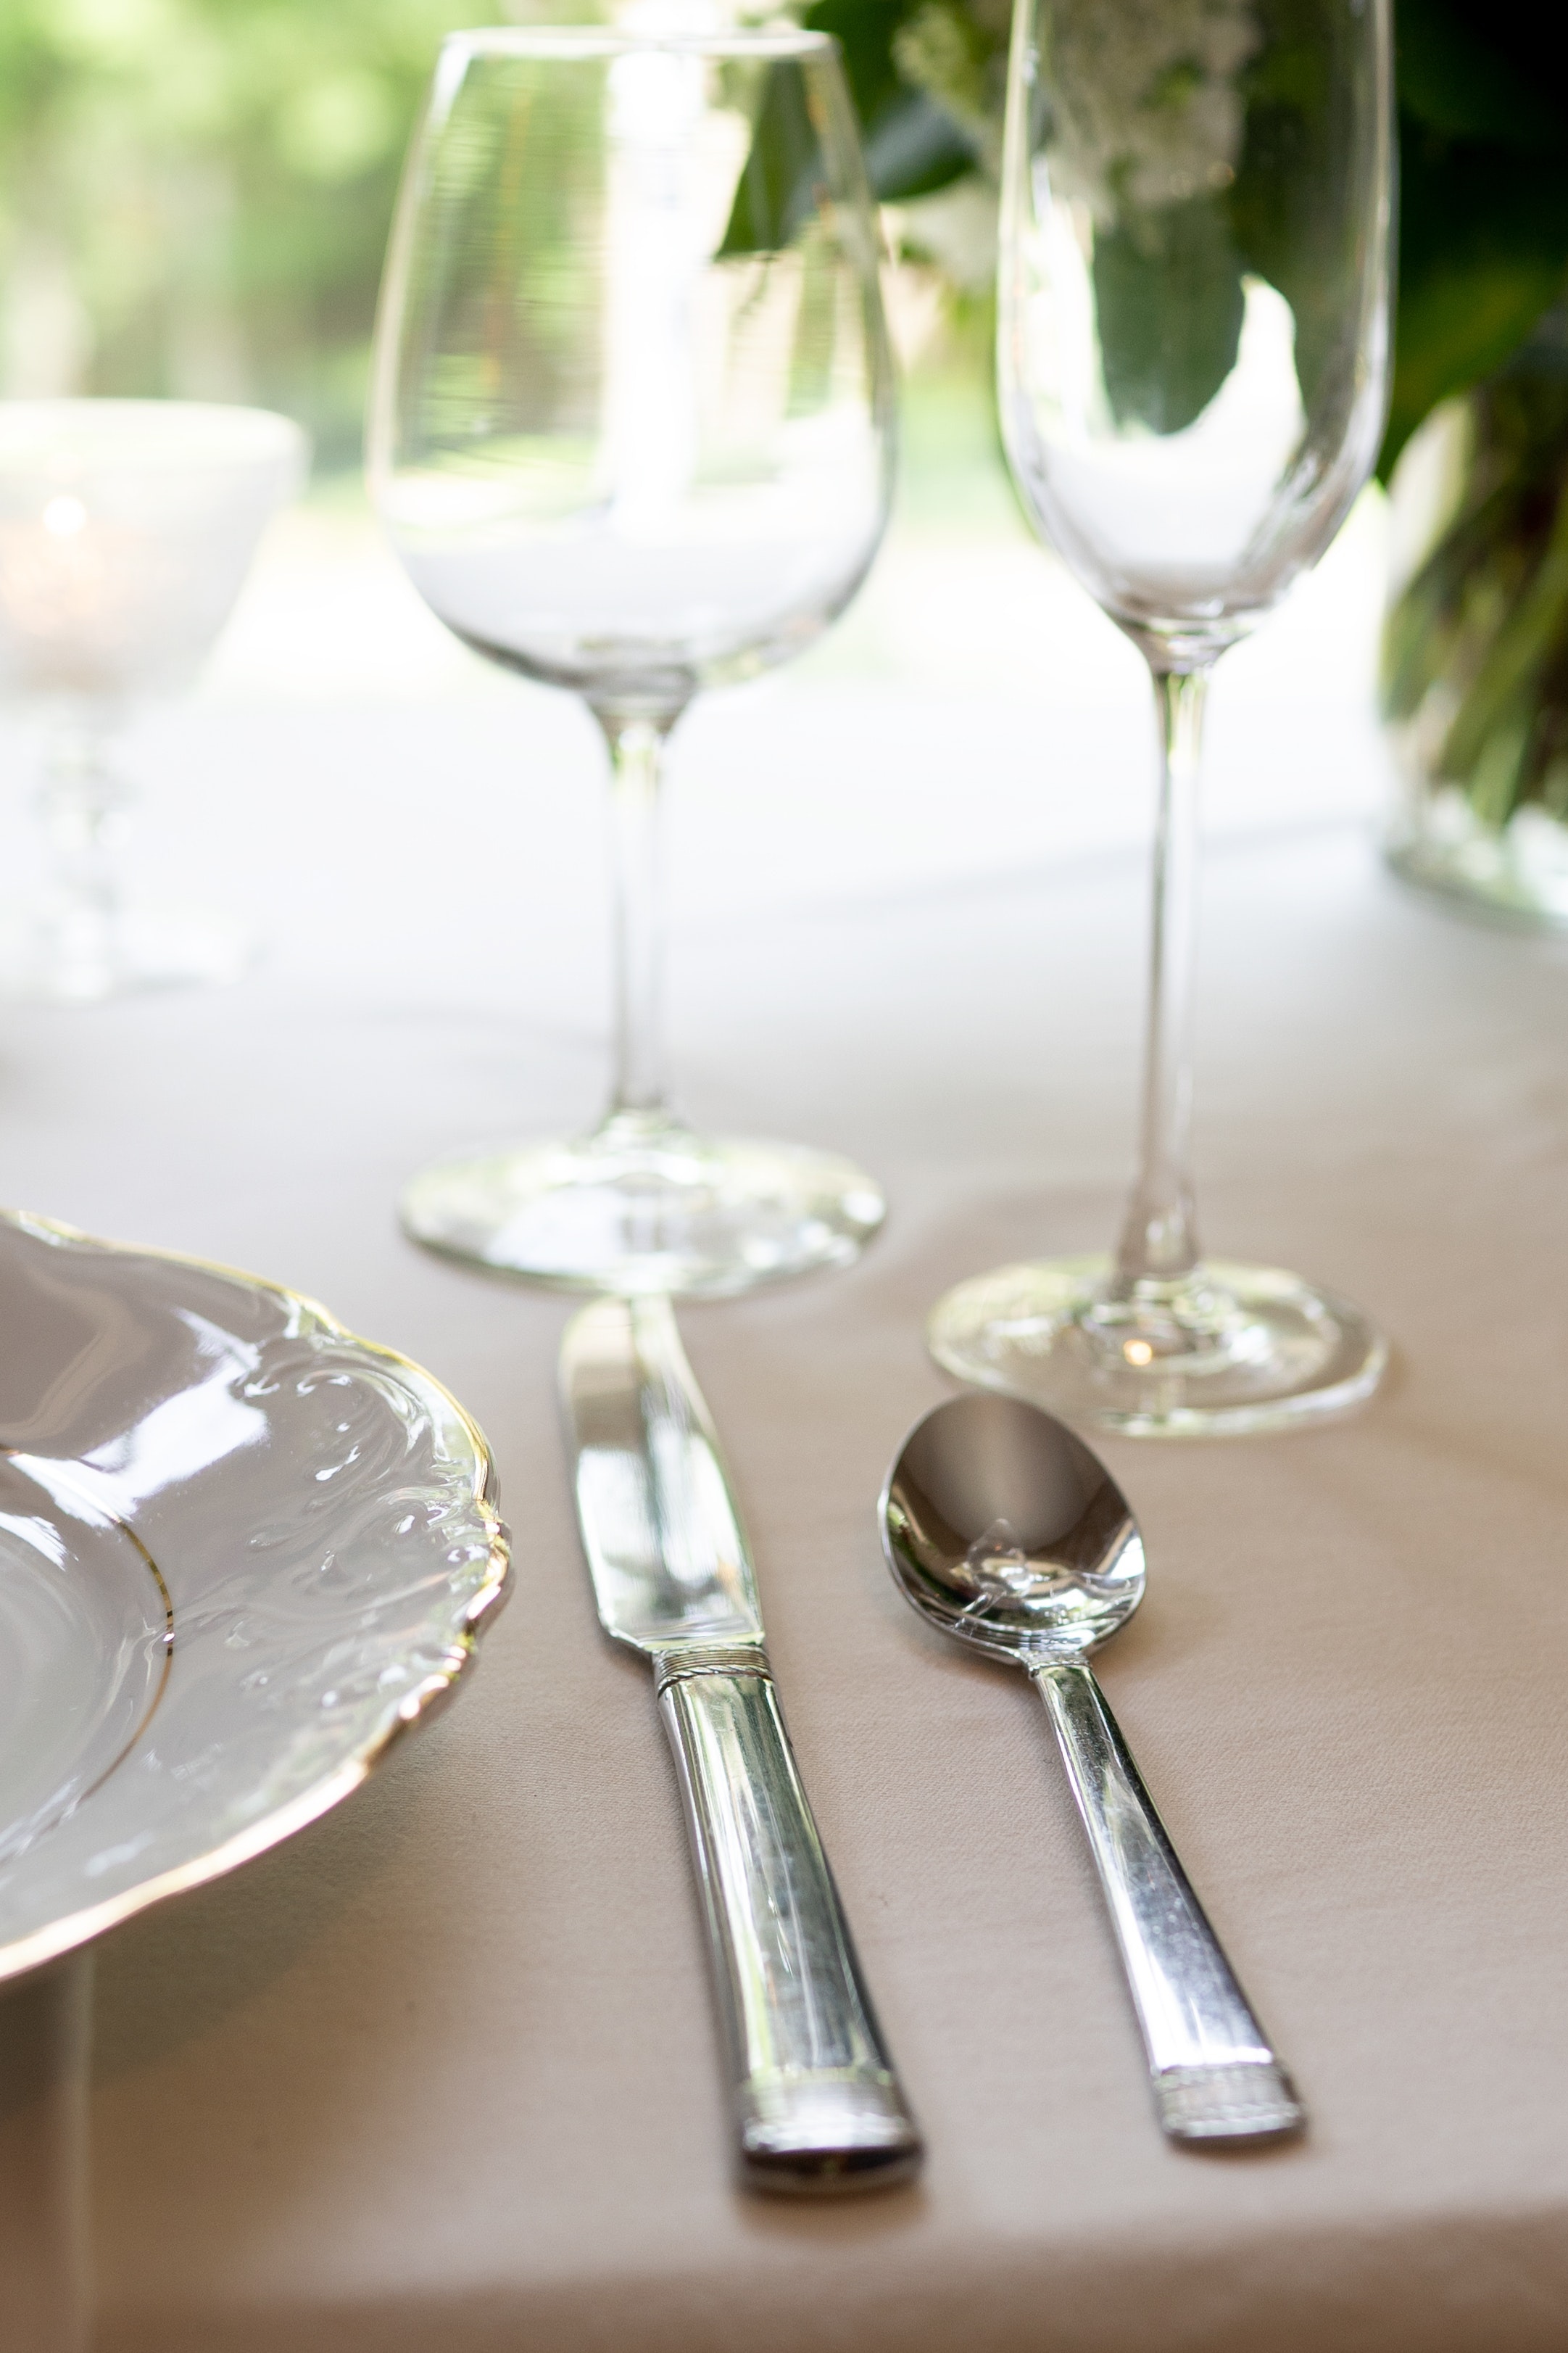 cutlery-dining-dinner-1428392.jpg